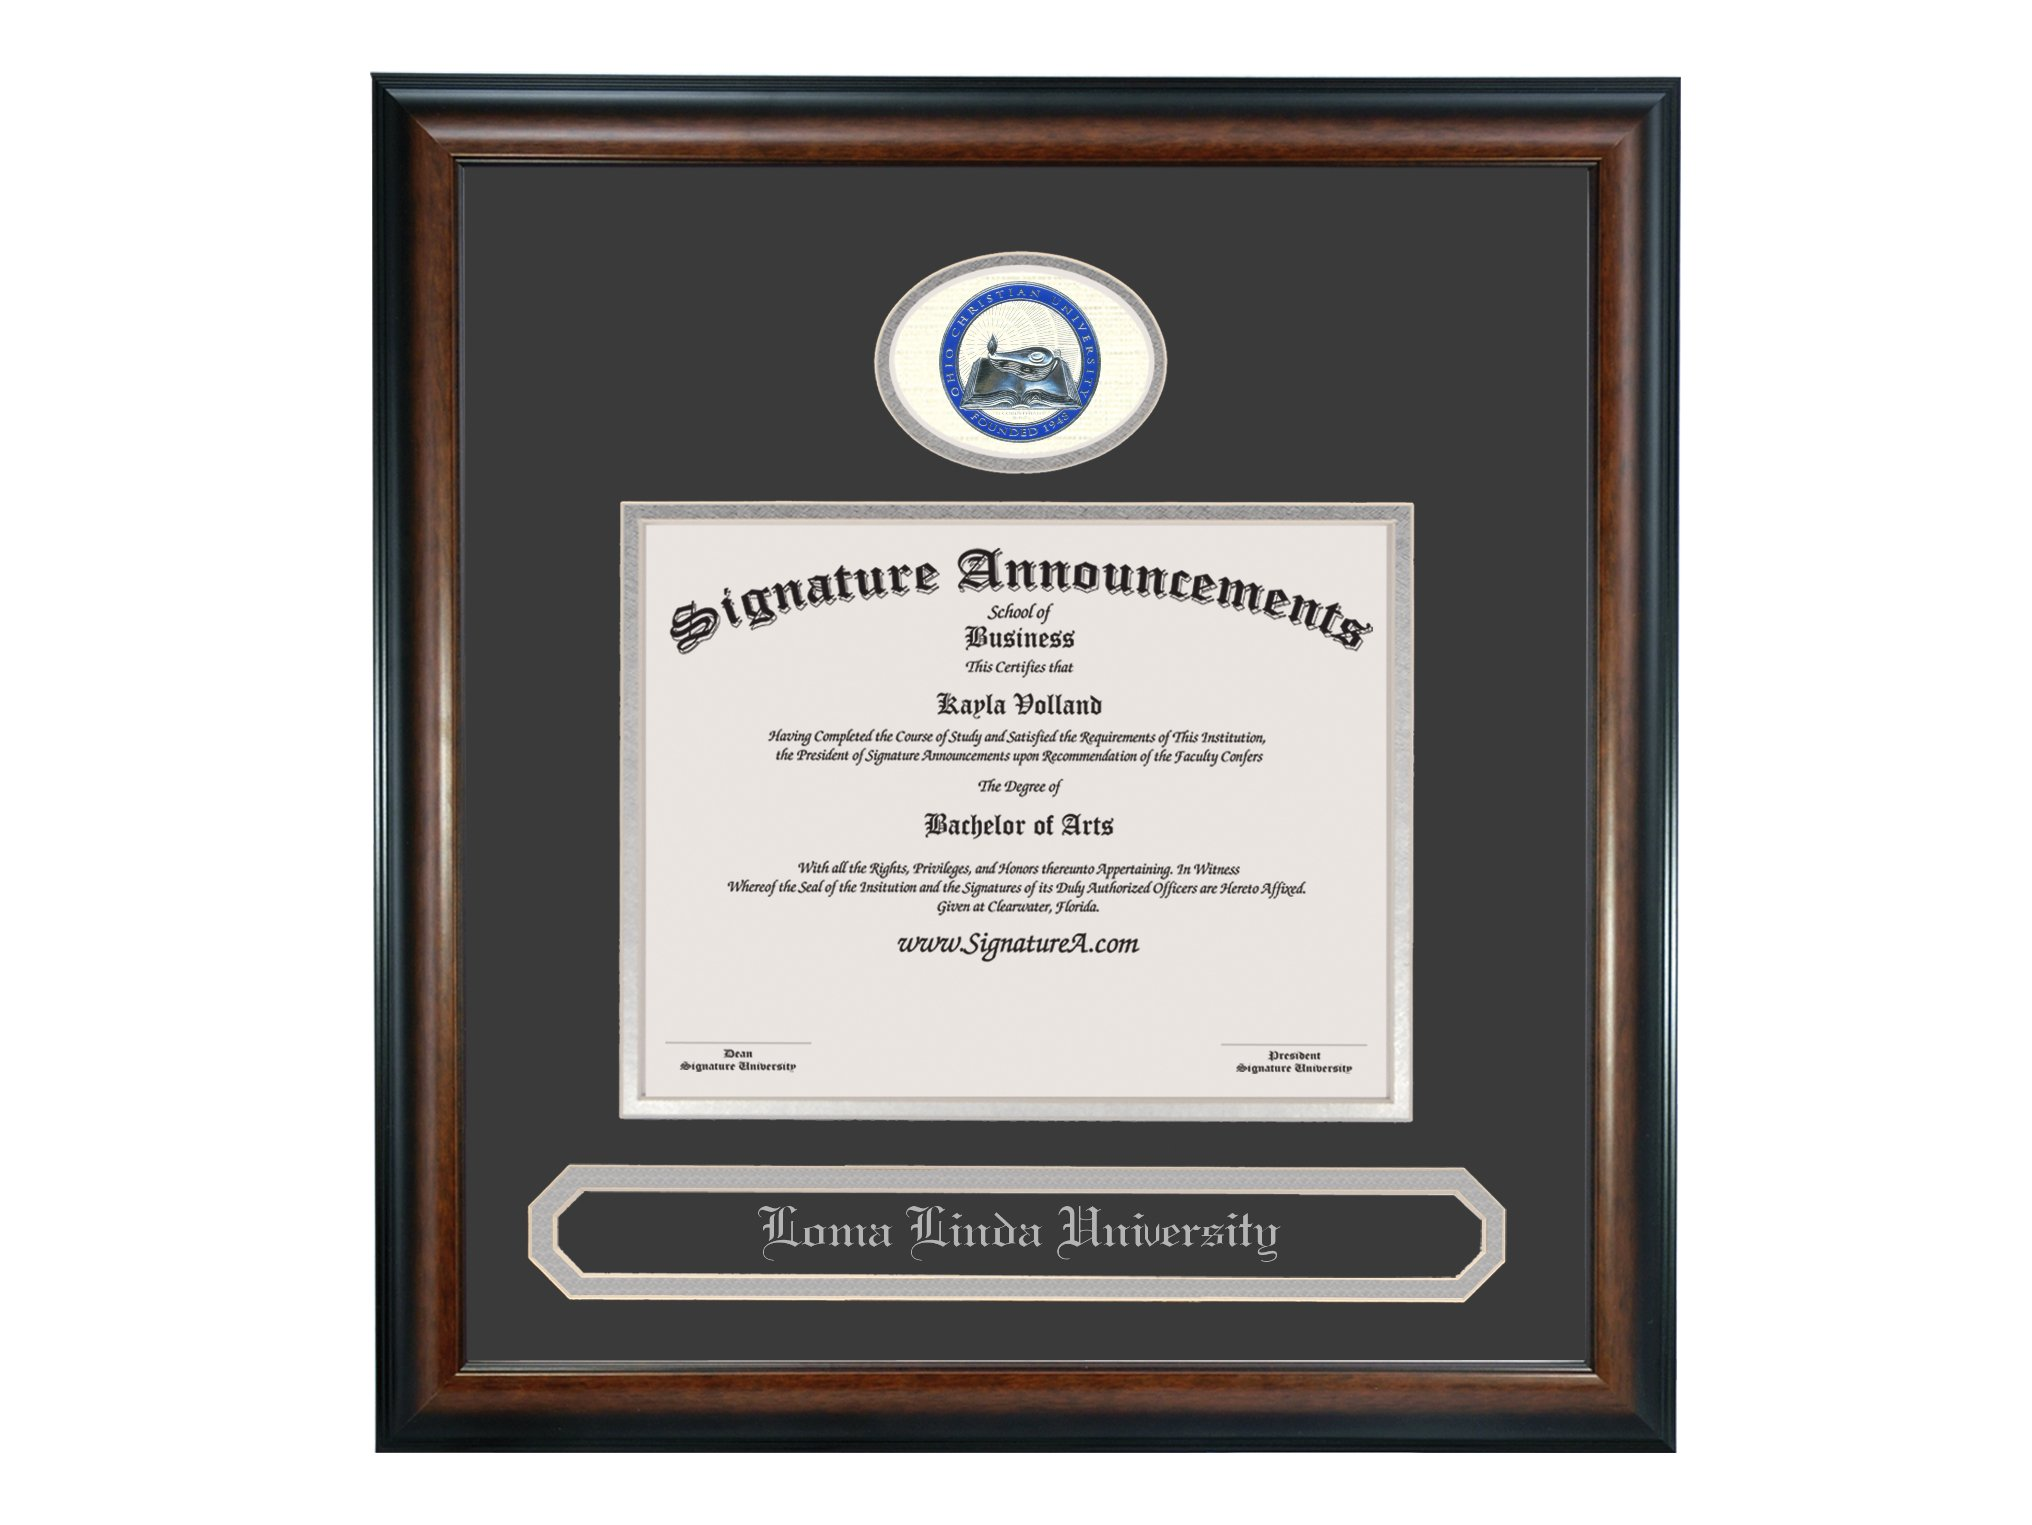 Signature Announcements Ohio-Christian-University Undergraduate, Graduate/Professional/Doctor Sculpted Foil Seal & Name Diploma Frame, 16'' x 16'', Matte Mahogany